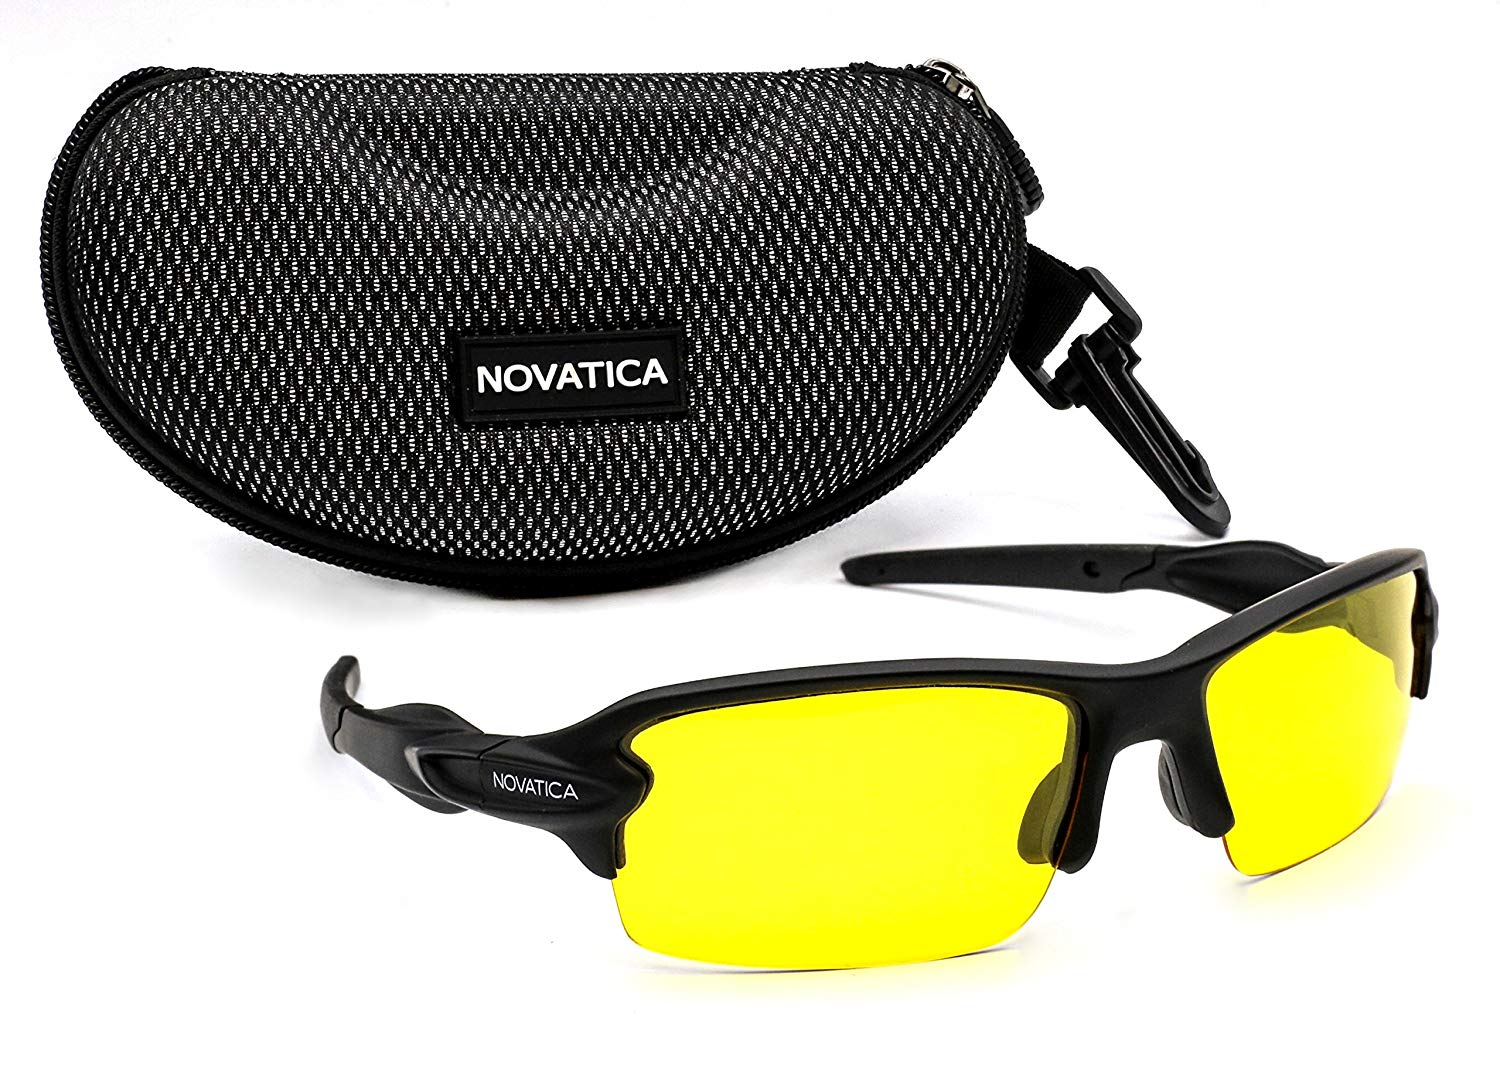 729f0a3cc6e NOVATICA Anti-Glare Night Driving Polarized TAC Glasses - HD Vision - UV  400 Protection